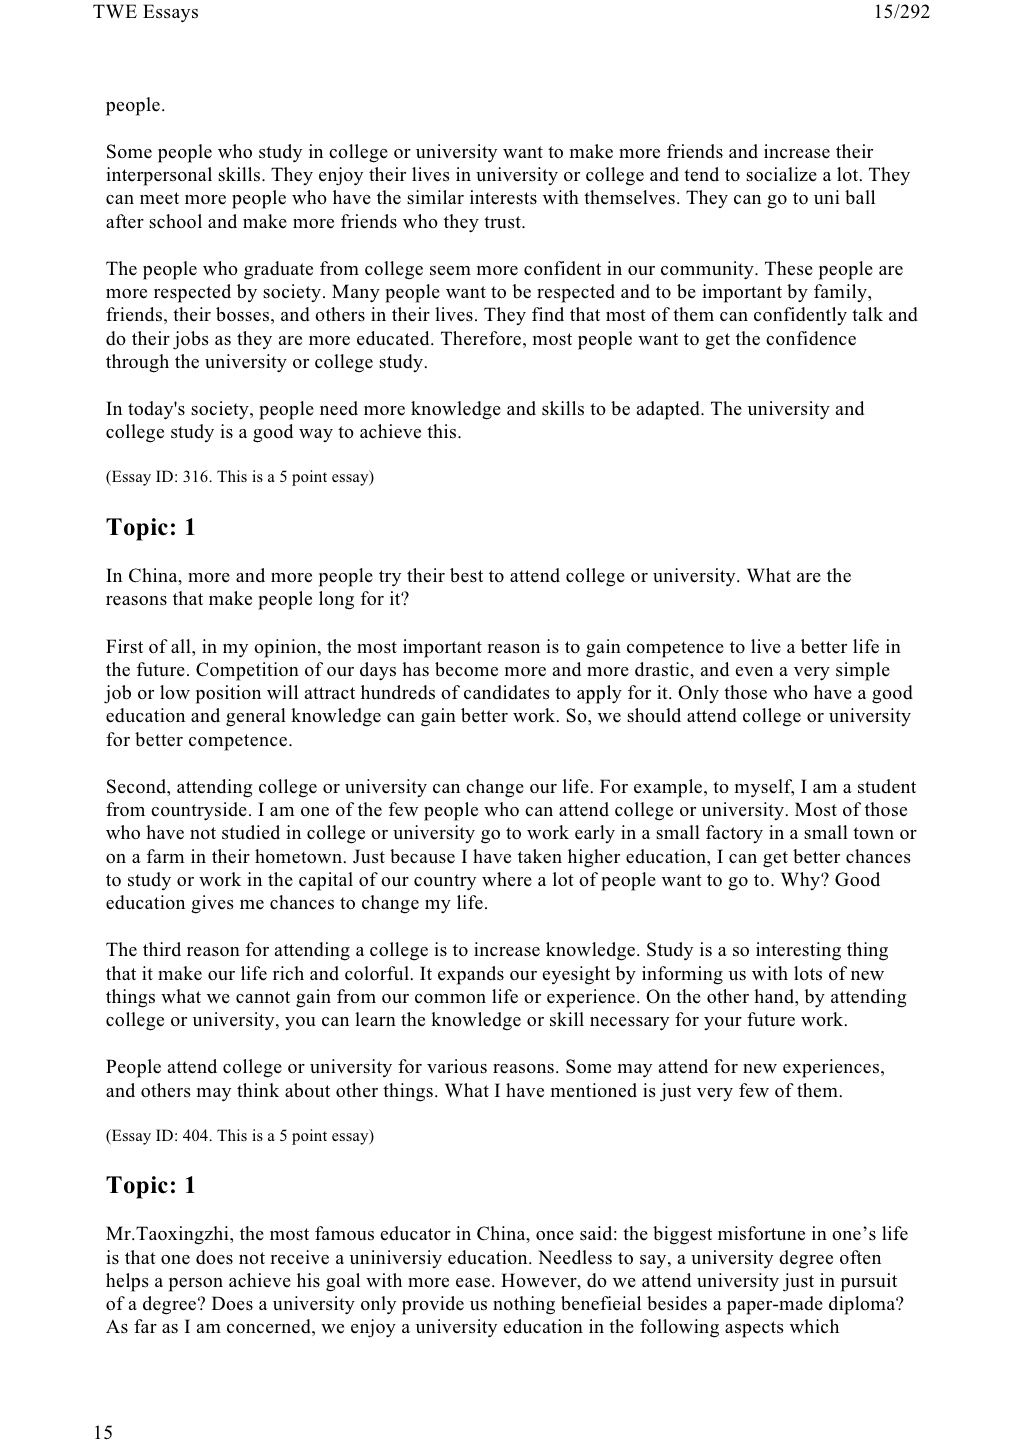 014 Toefl Writing Twe Topics And Model Essays Career Plan After College Graduation Essay My Plans Five Year Excellent High School Research Paper Prompts Full